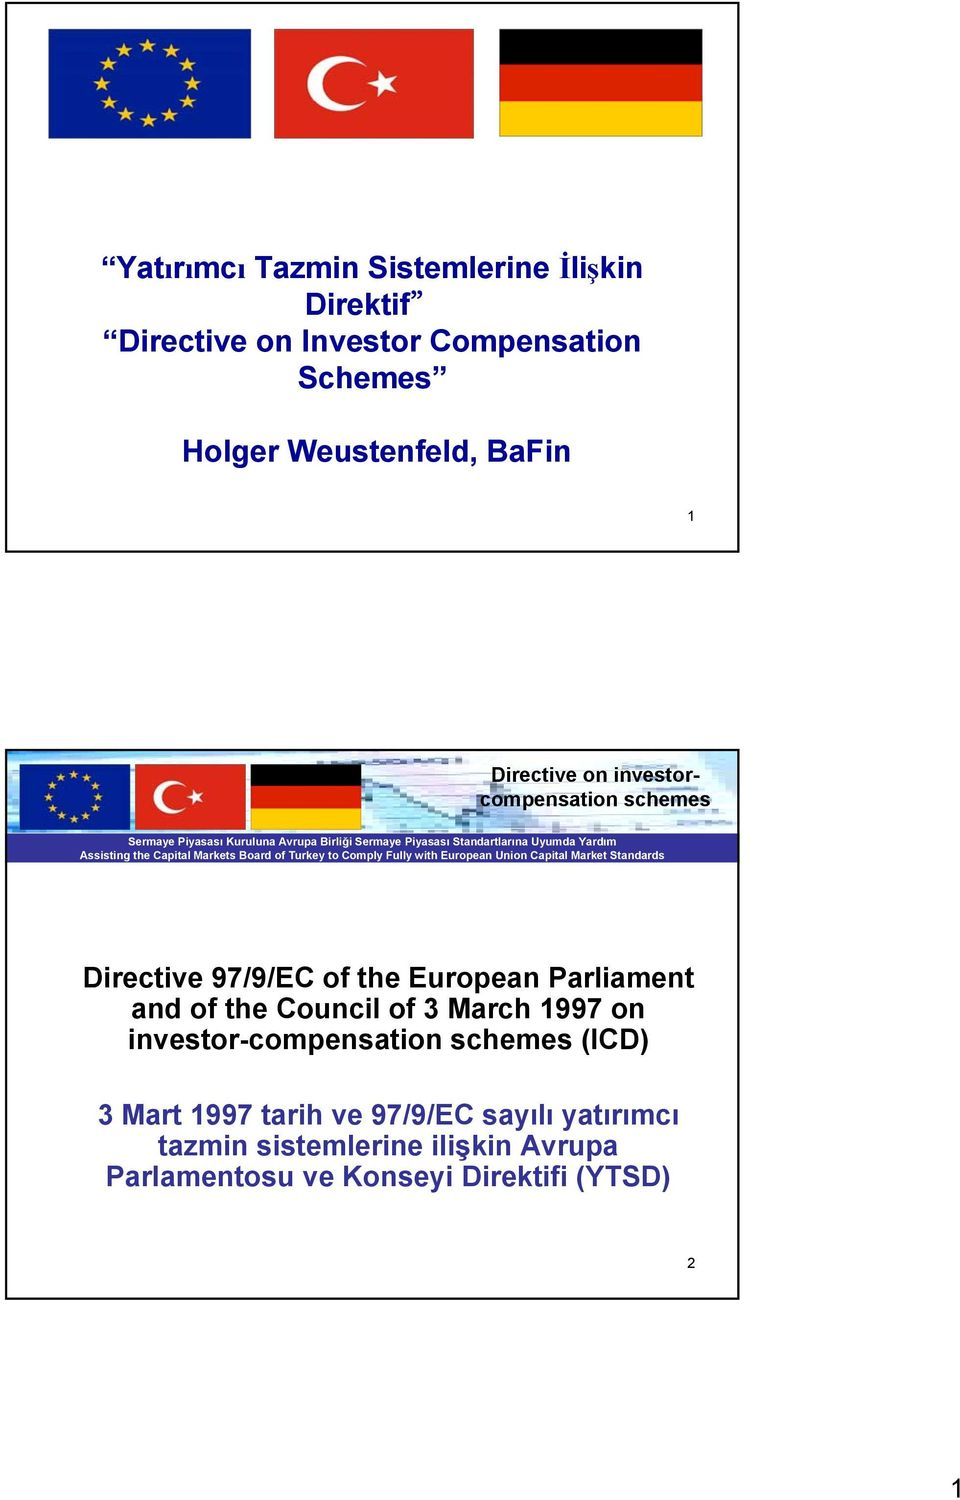 Parliament and of the Council of 3 March 1997 on investor-compensation schemes (ICD) 3 Mart 1997